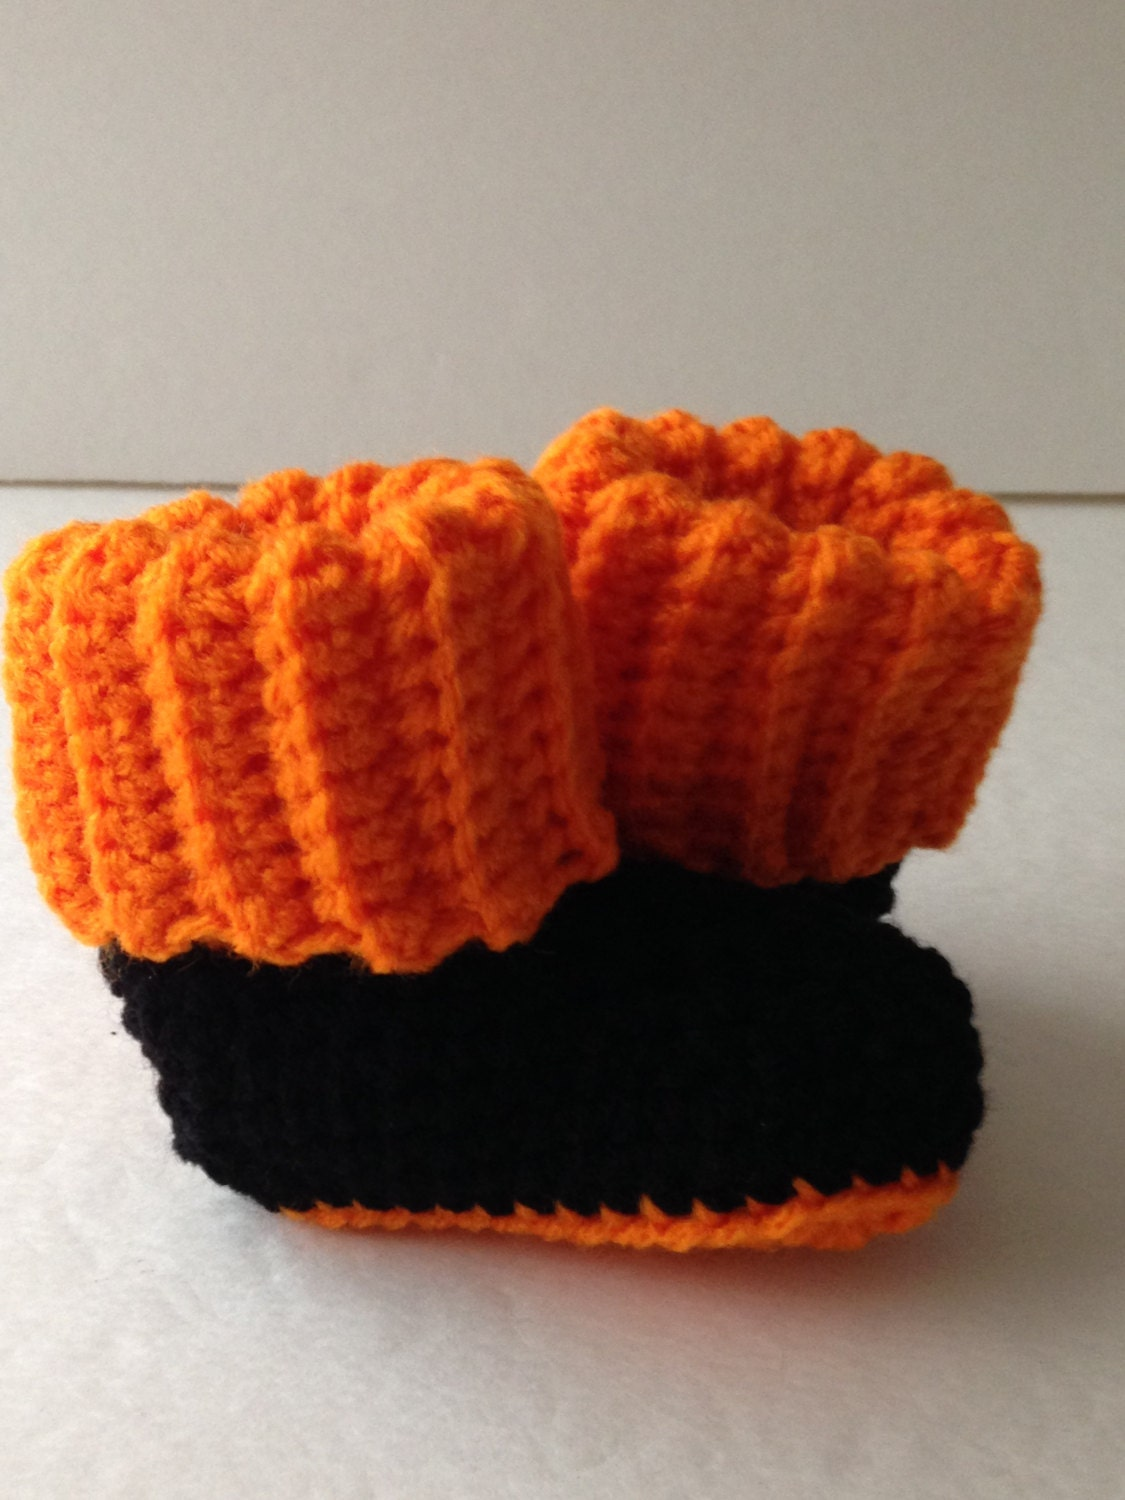 d3b339d58d3 Baby Booties - Halloween Black and Orange - Crochet Handmade - Ready to Ship